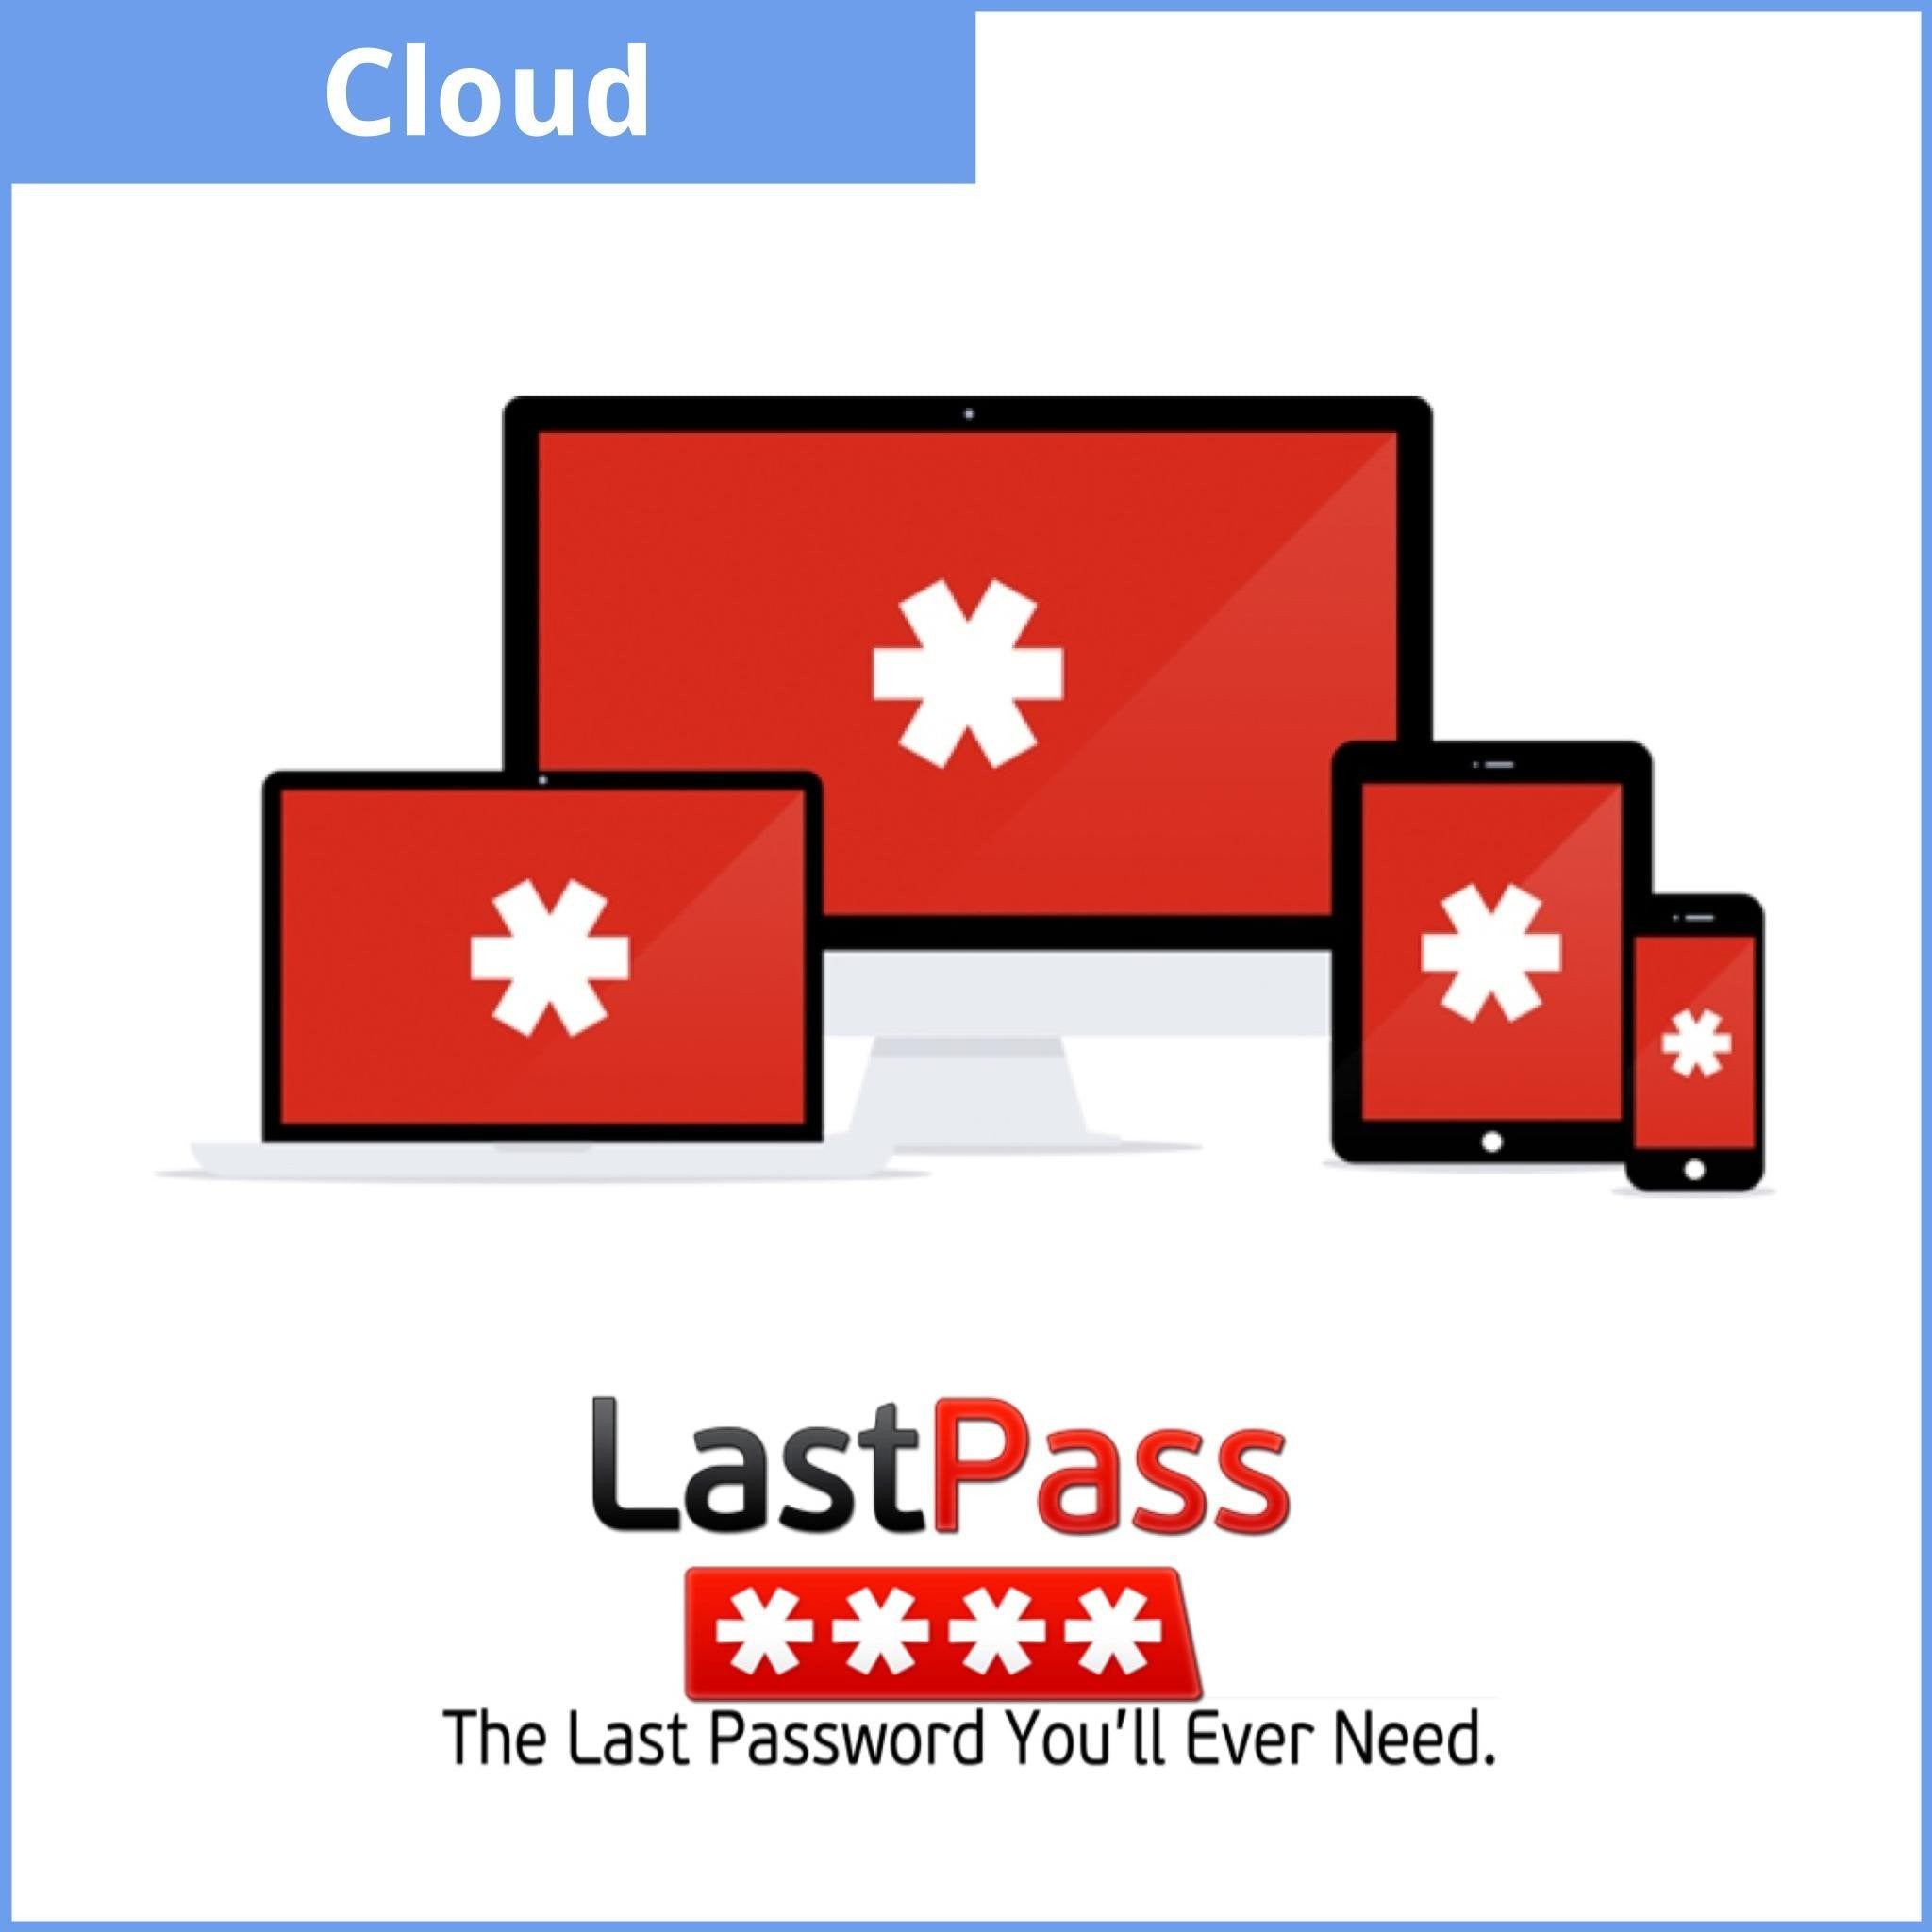 Lastpass - Straight Forward AV and IT